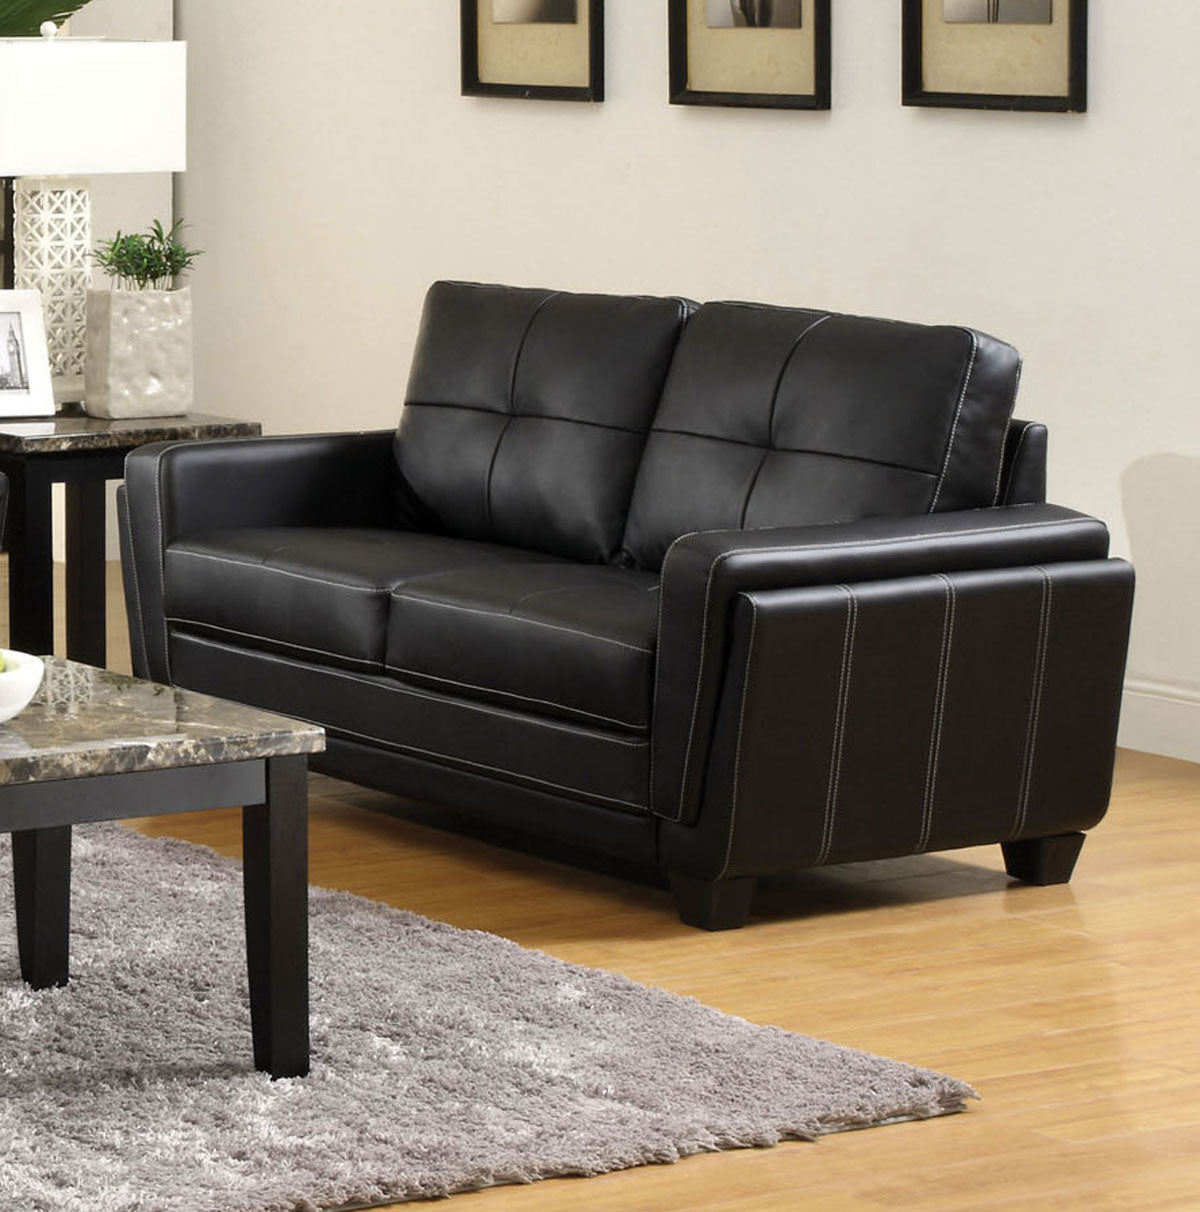 Blacksburg CM6485-L Contemporary Style Black Leatherette Loveseat